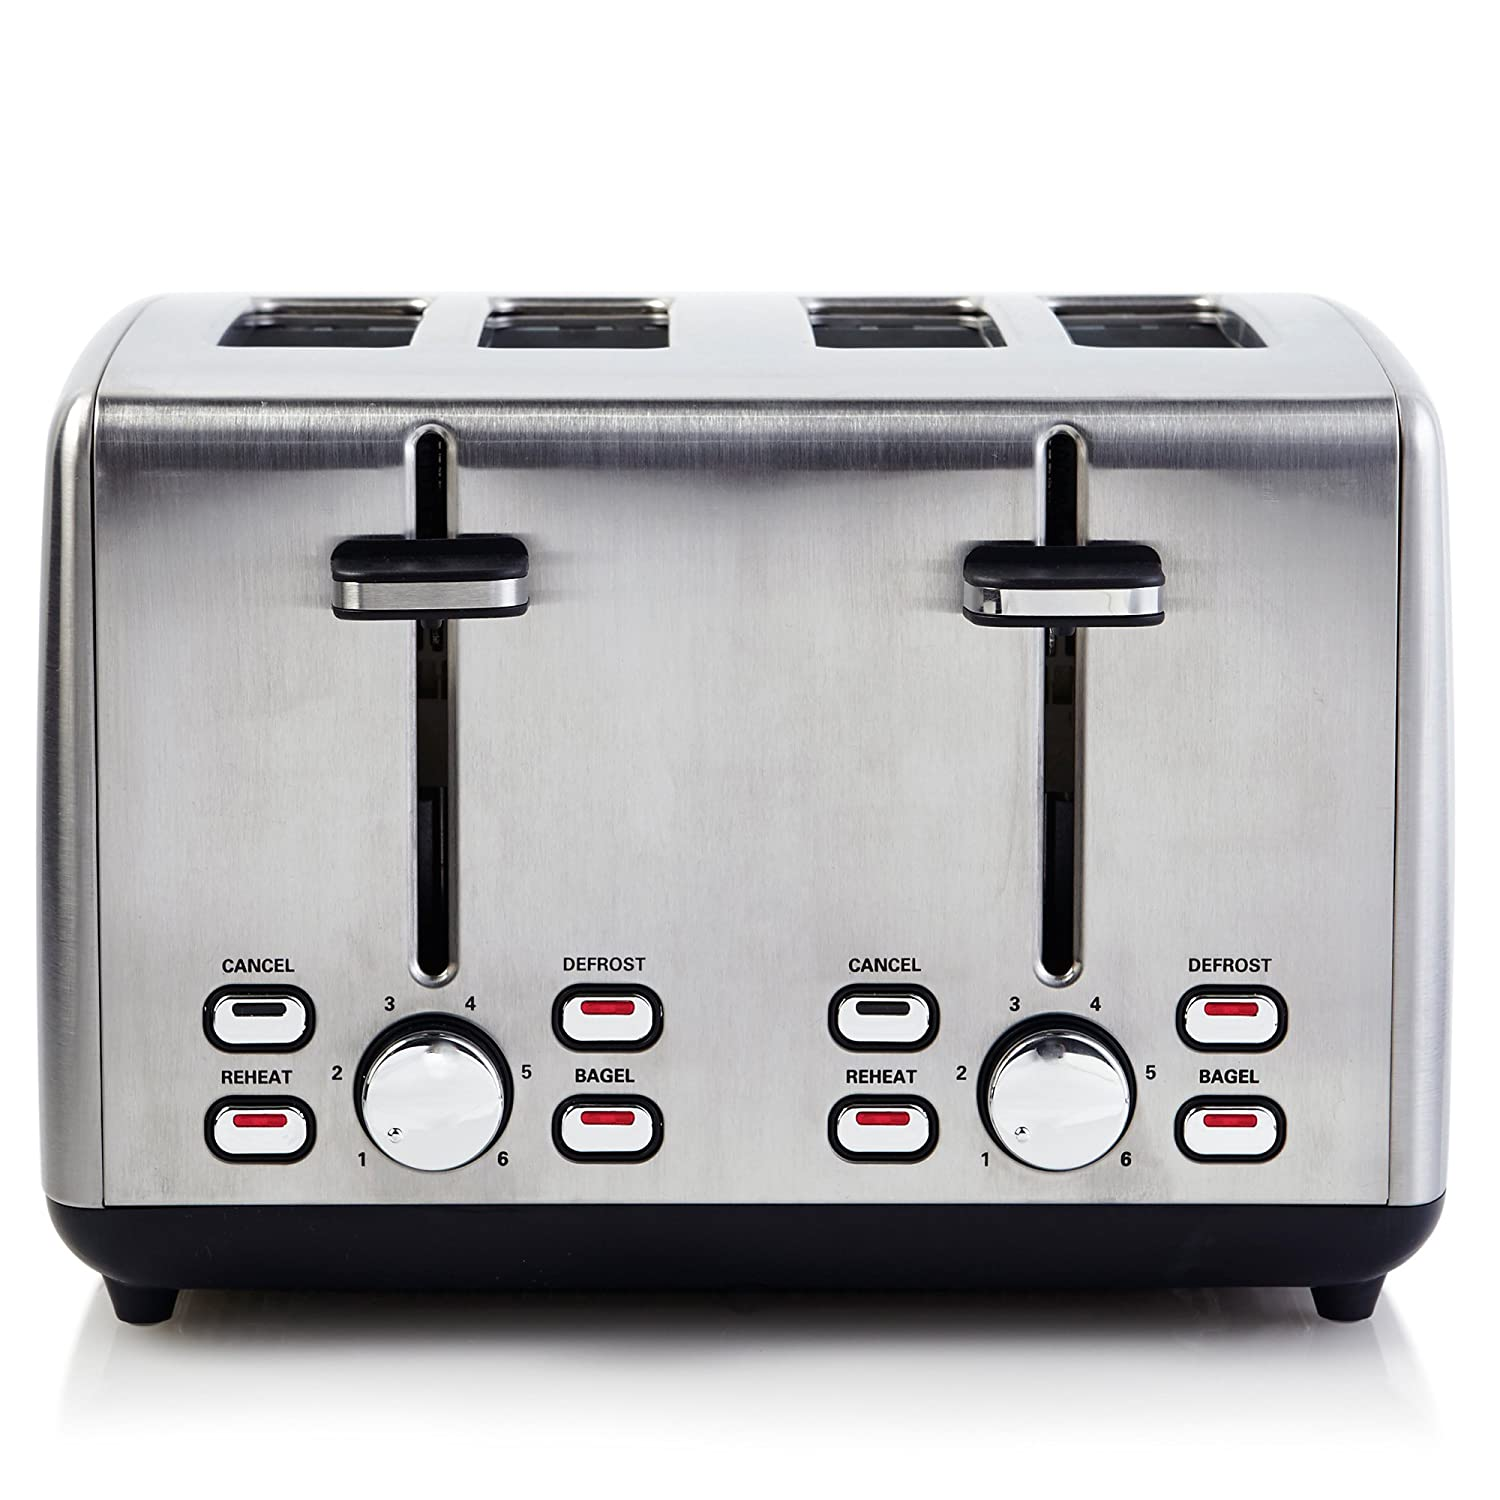 Continental Electric Toaster ps77451, 4-Slice, Silver